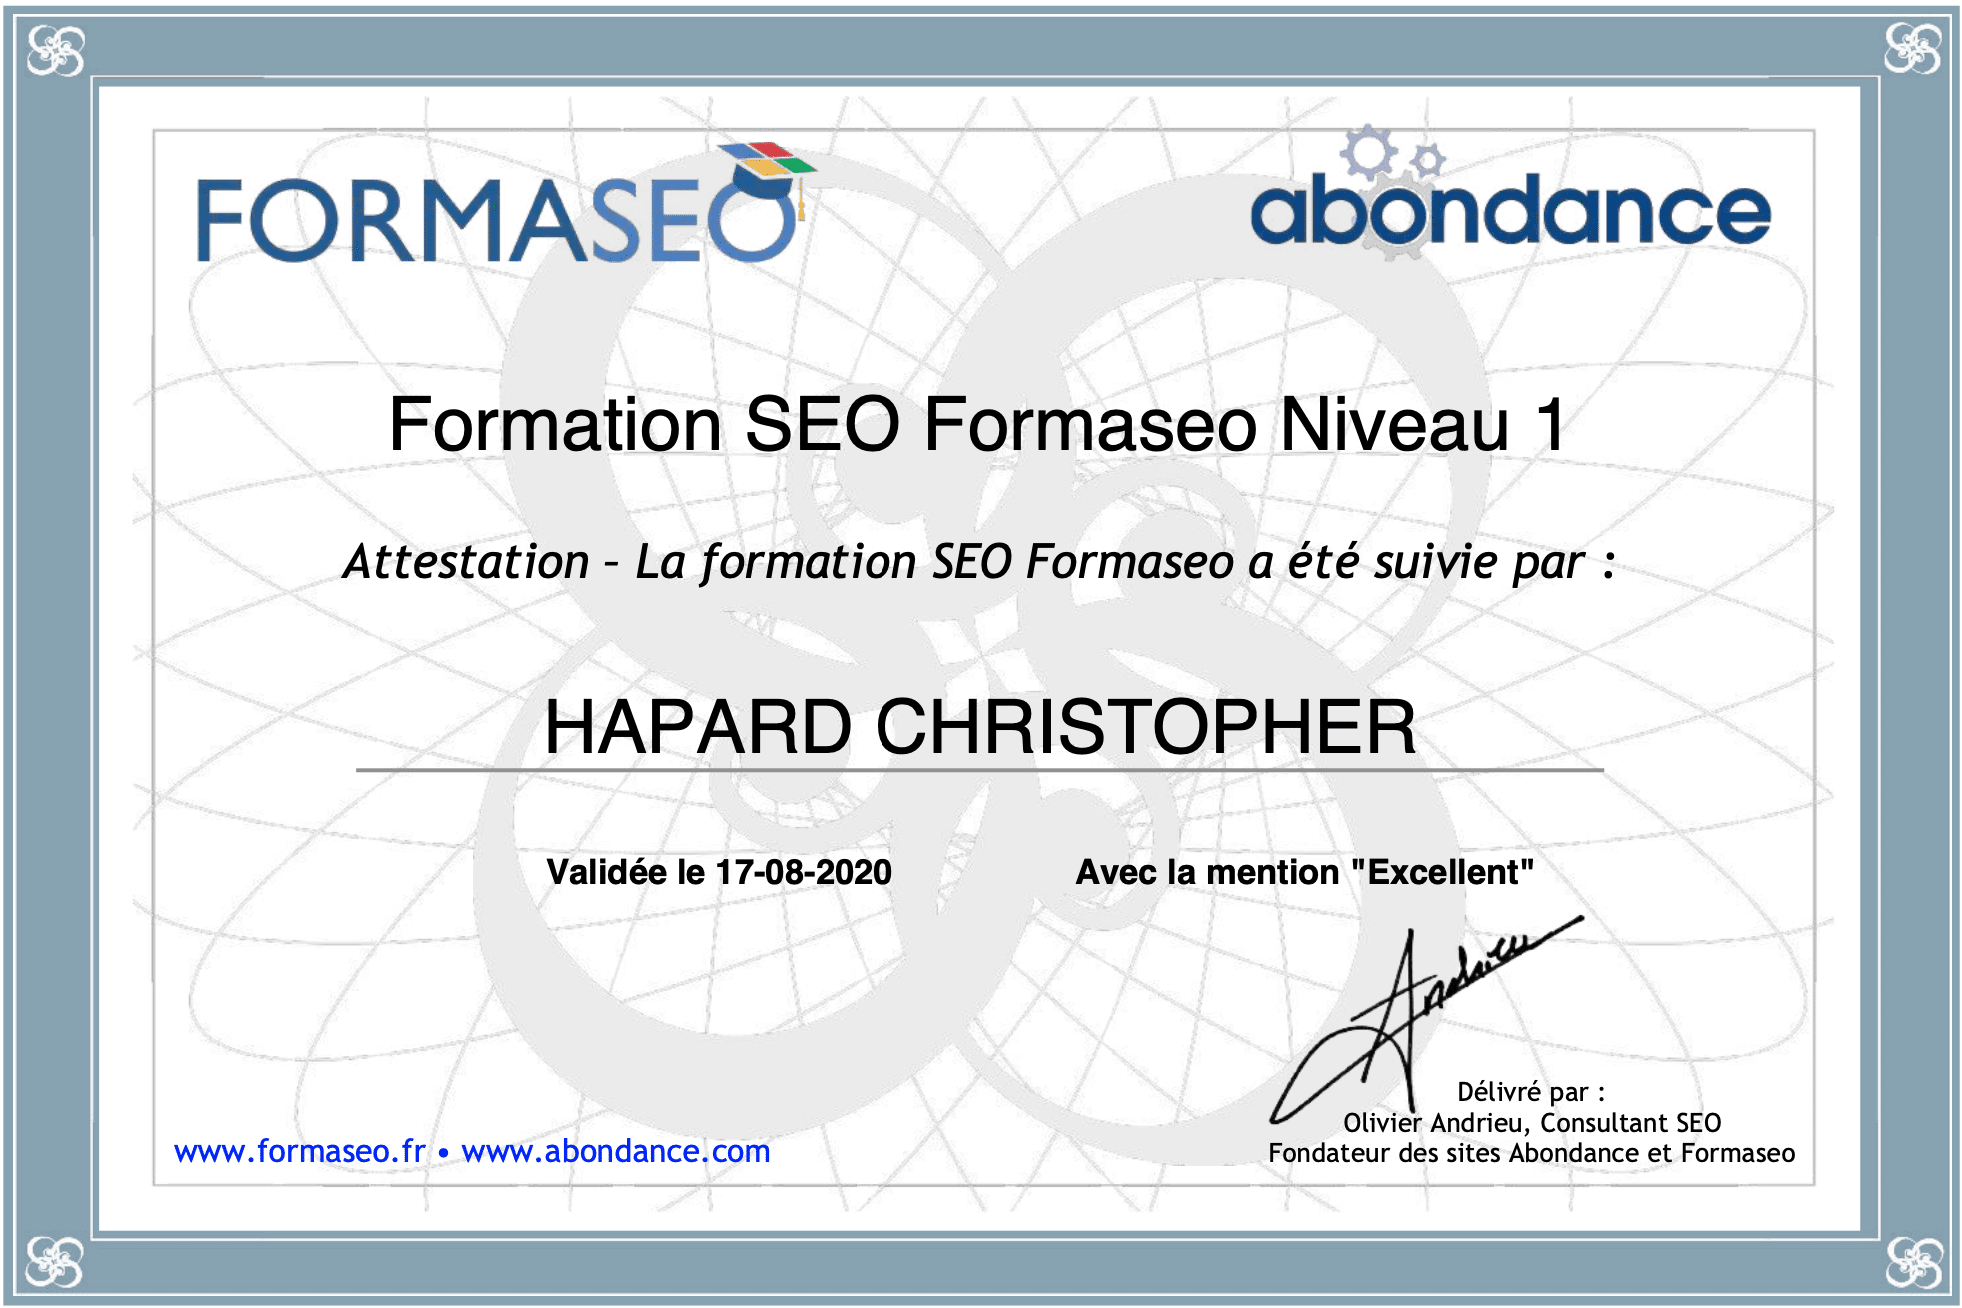 Certification Formaseo Christopher Hapard